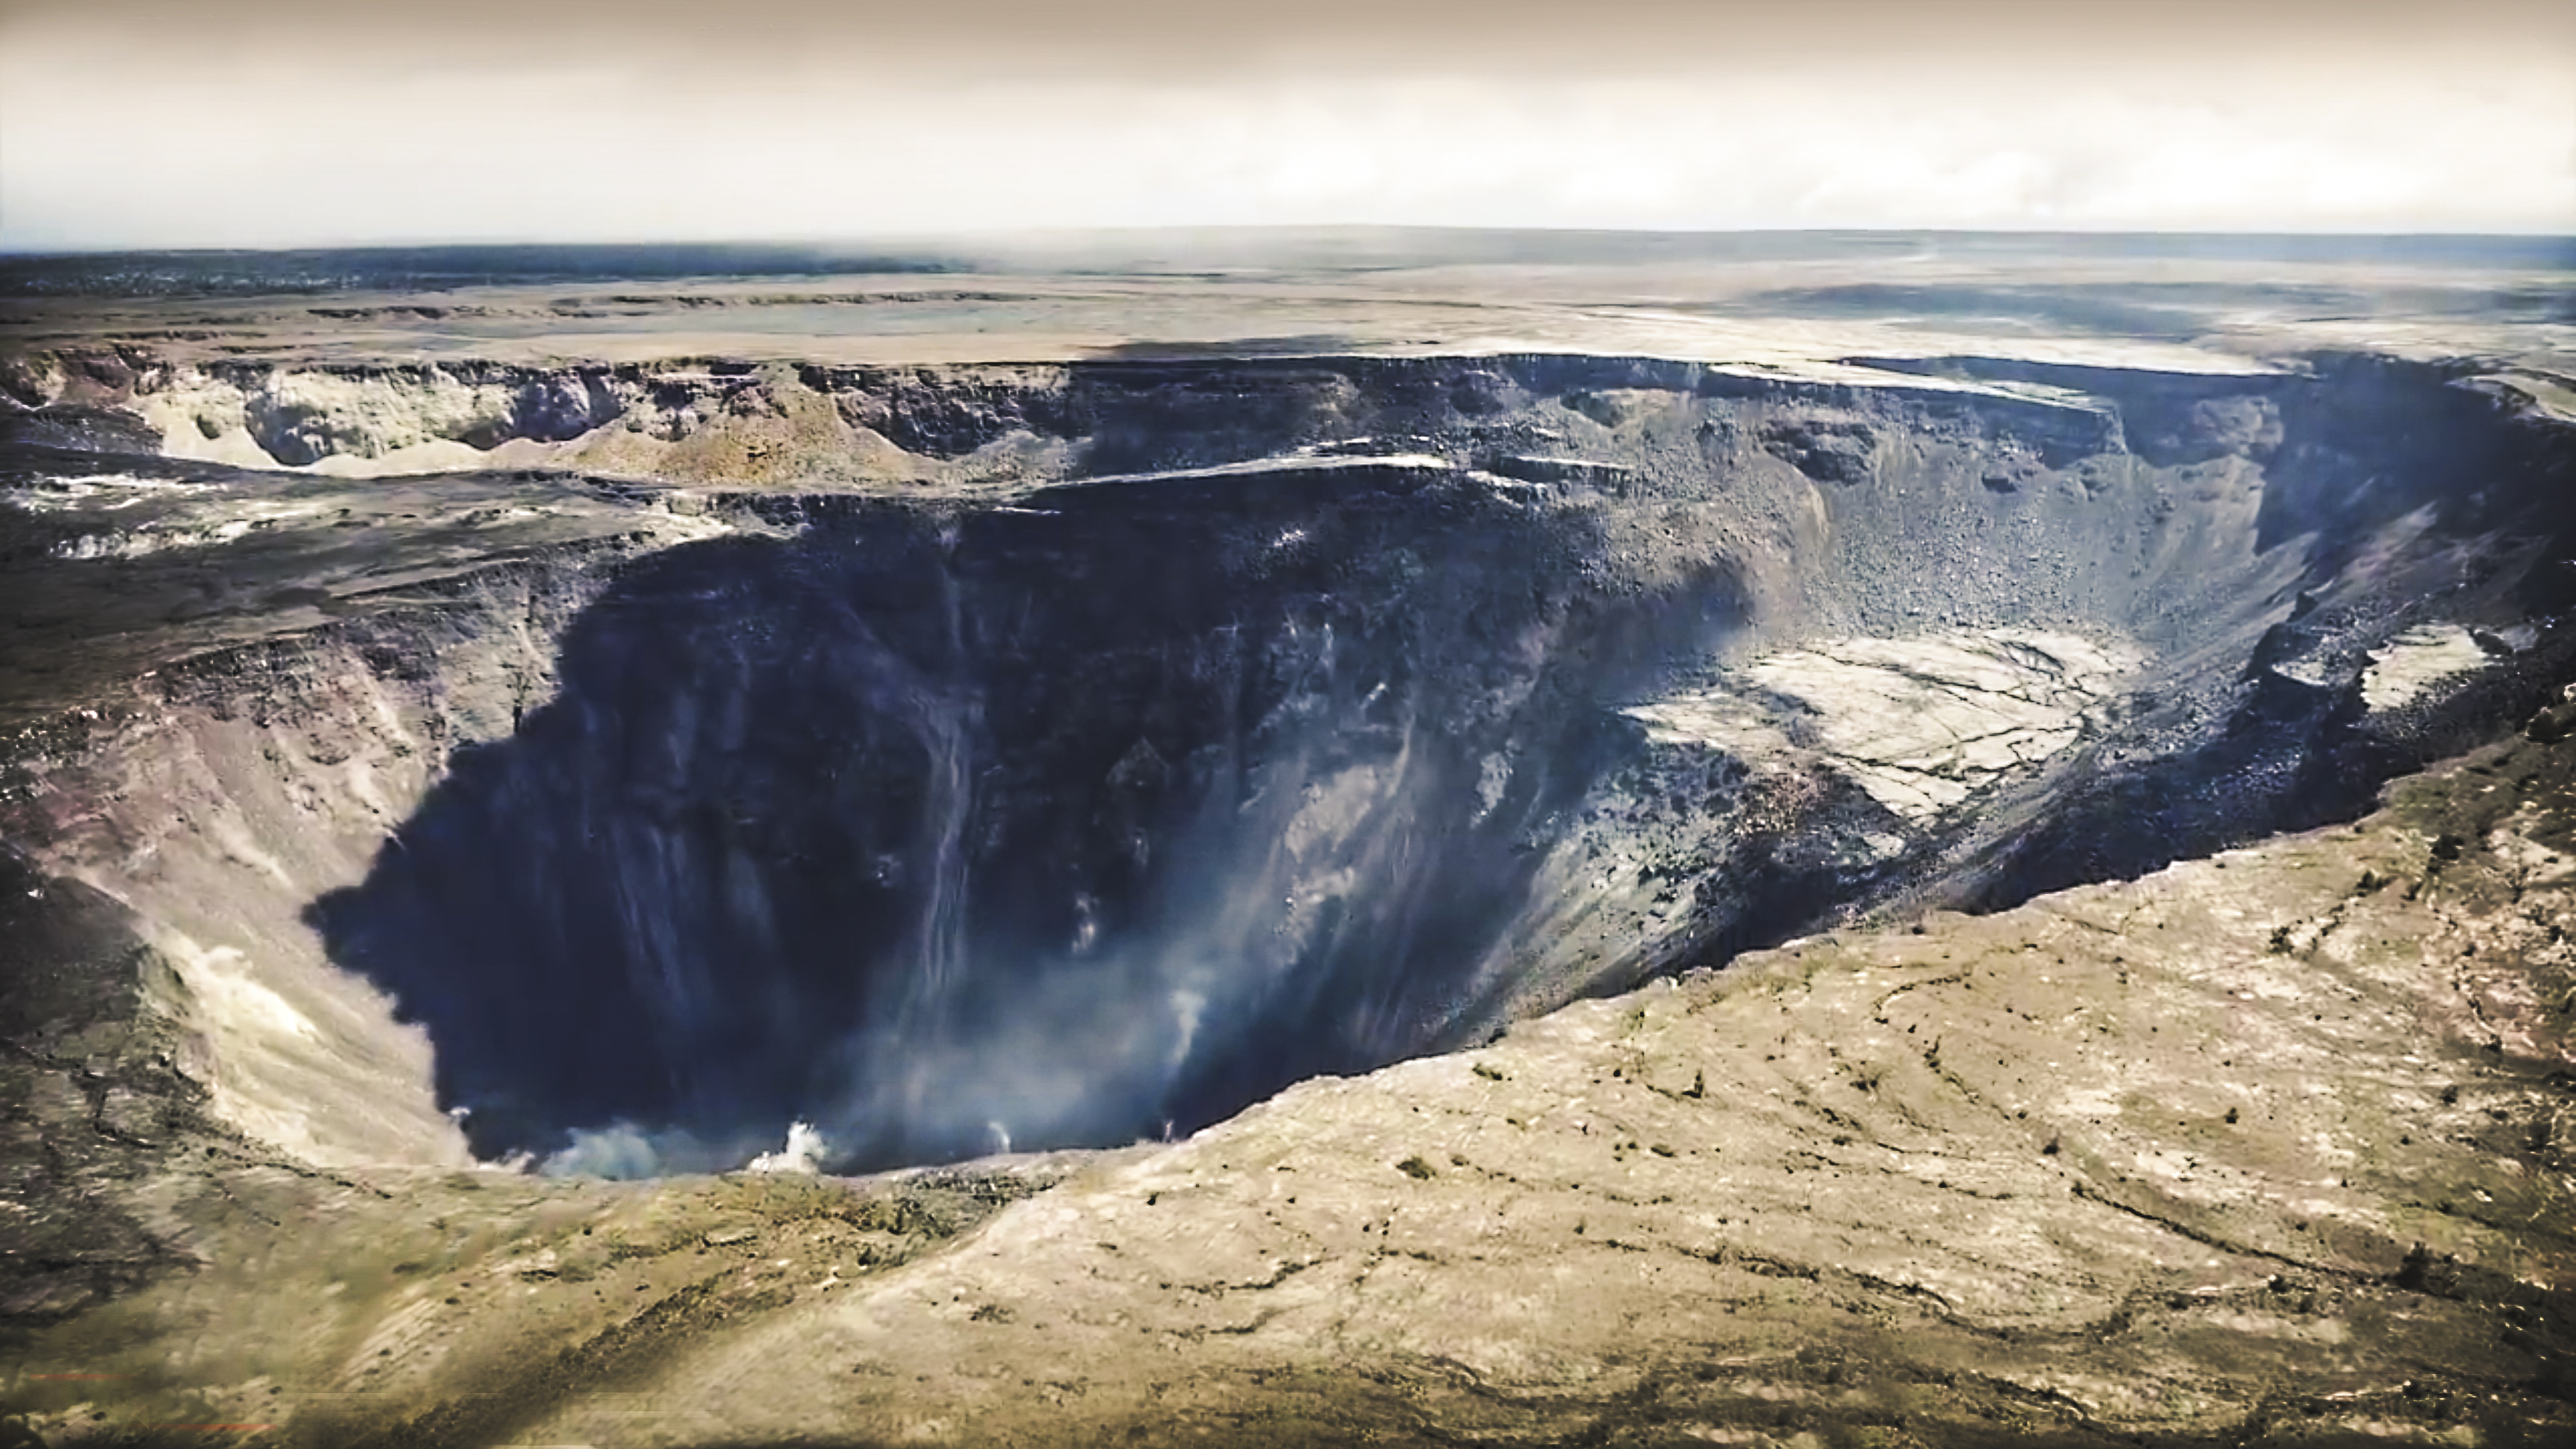 Collapsed Crater